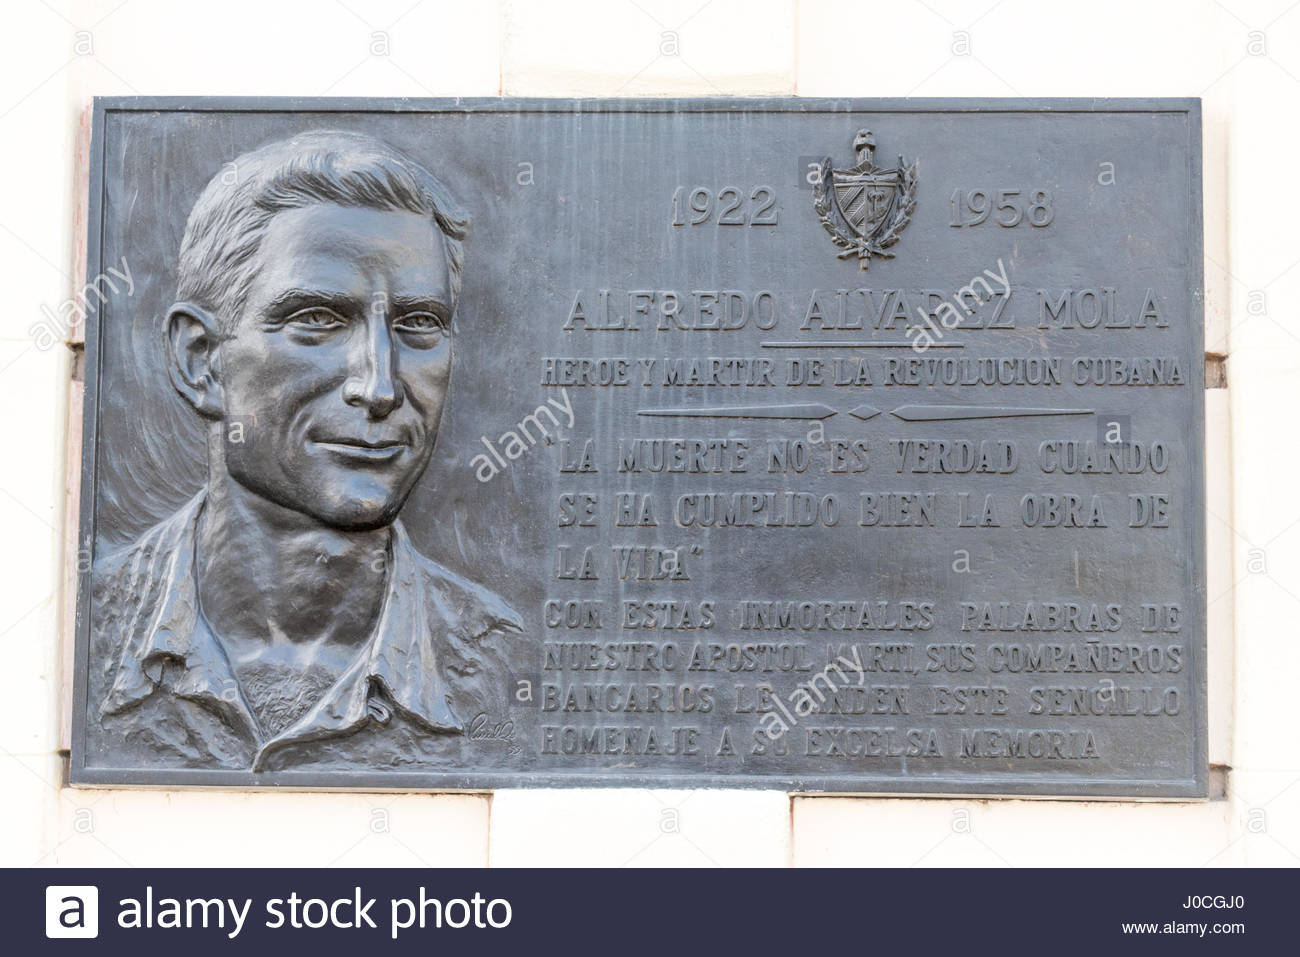 Historic plaque honoring Alfredo Alvarez Mola. He is a hero and martyr of the Cuban Revolution. The plaque is located - Stock Image